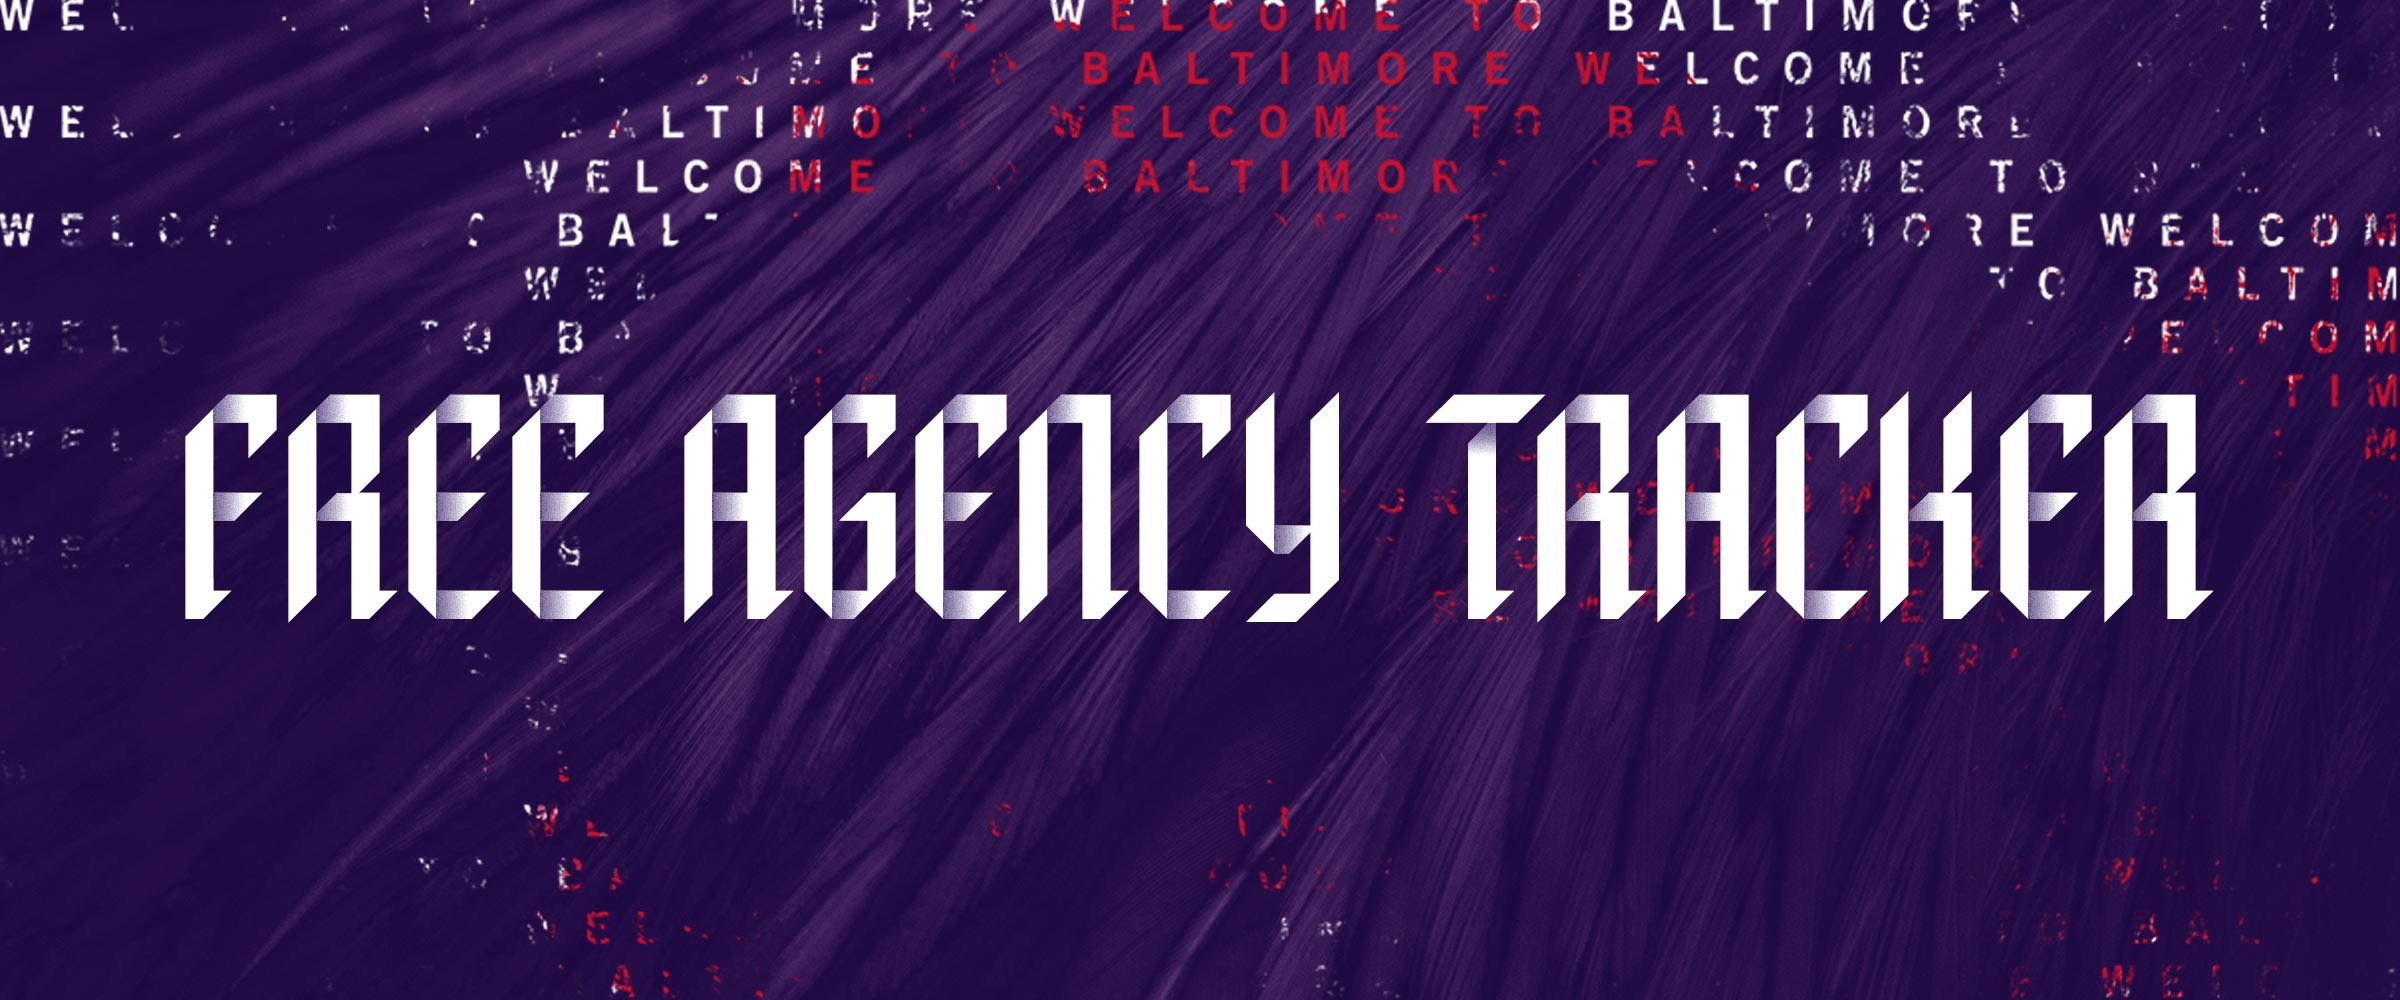 Free-Agency-Tracker-Header